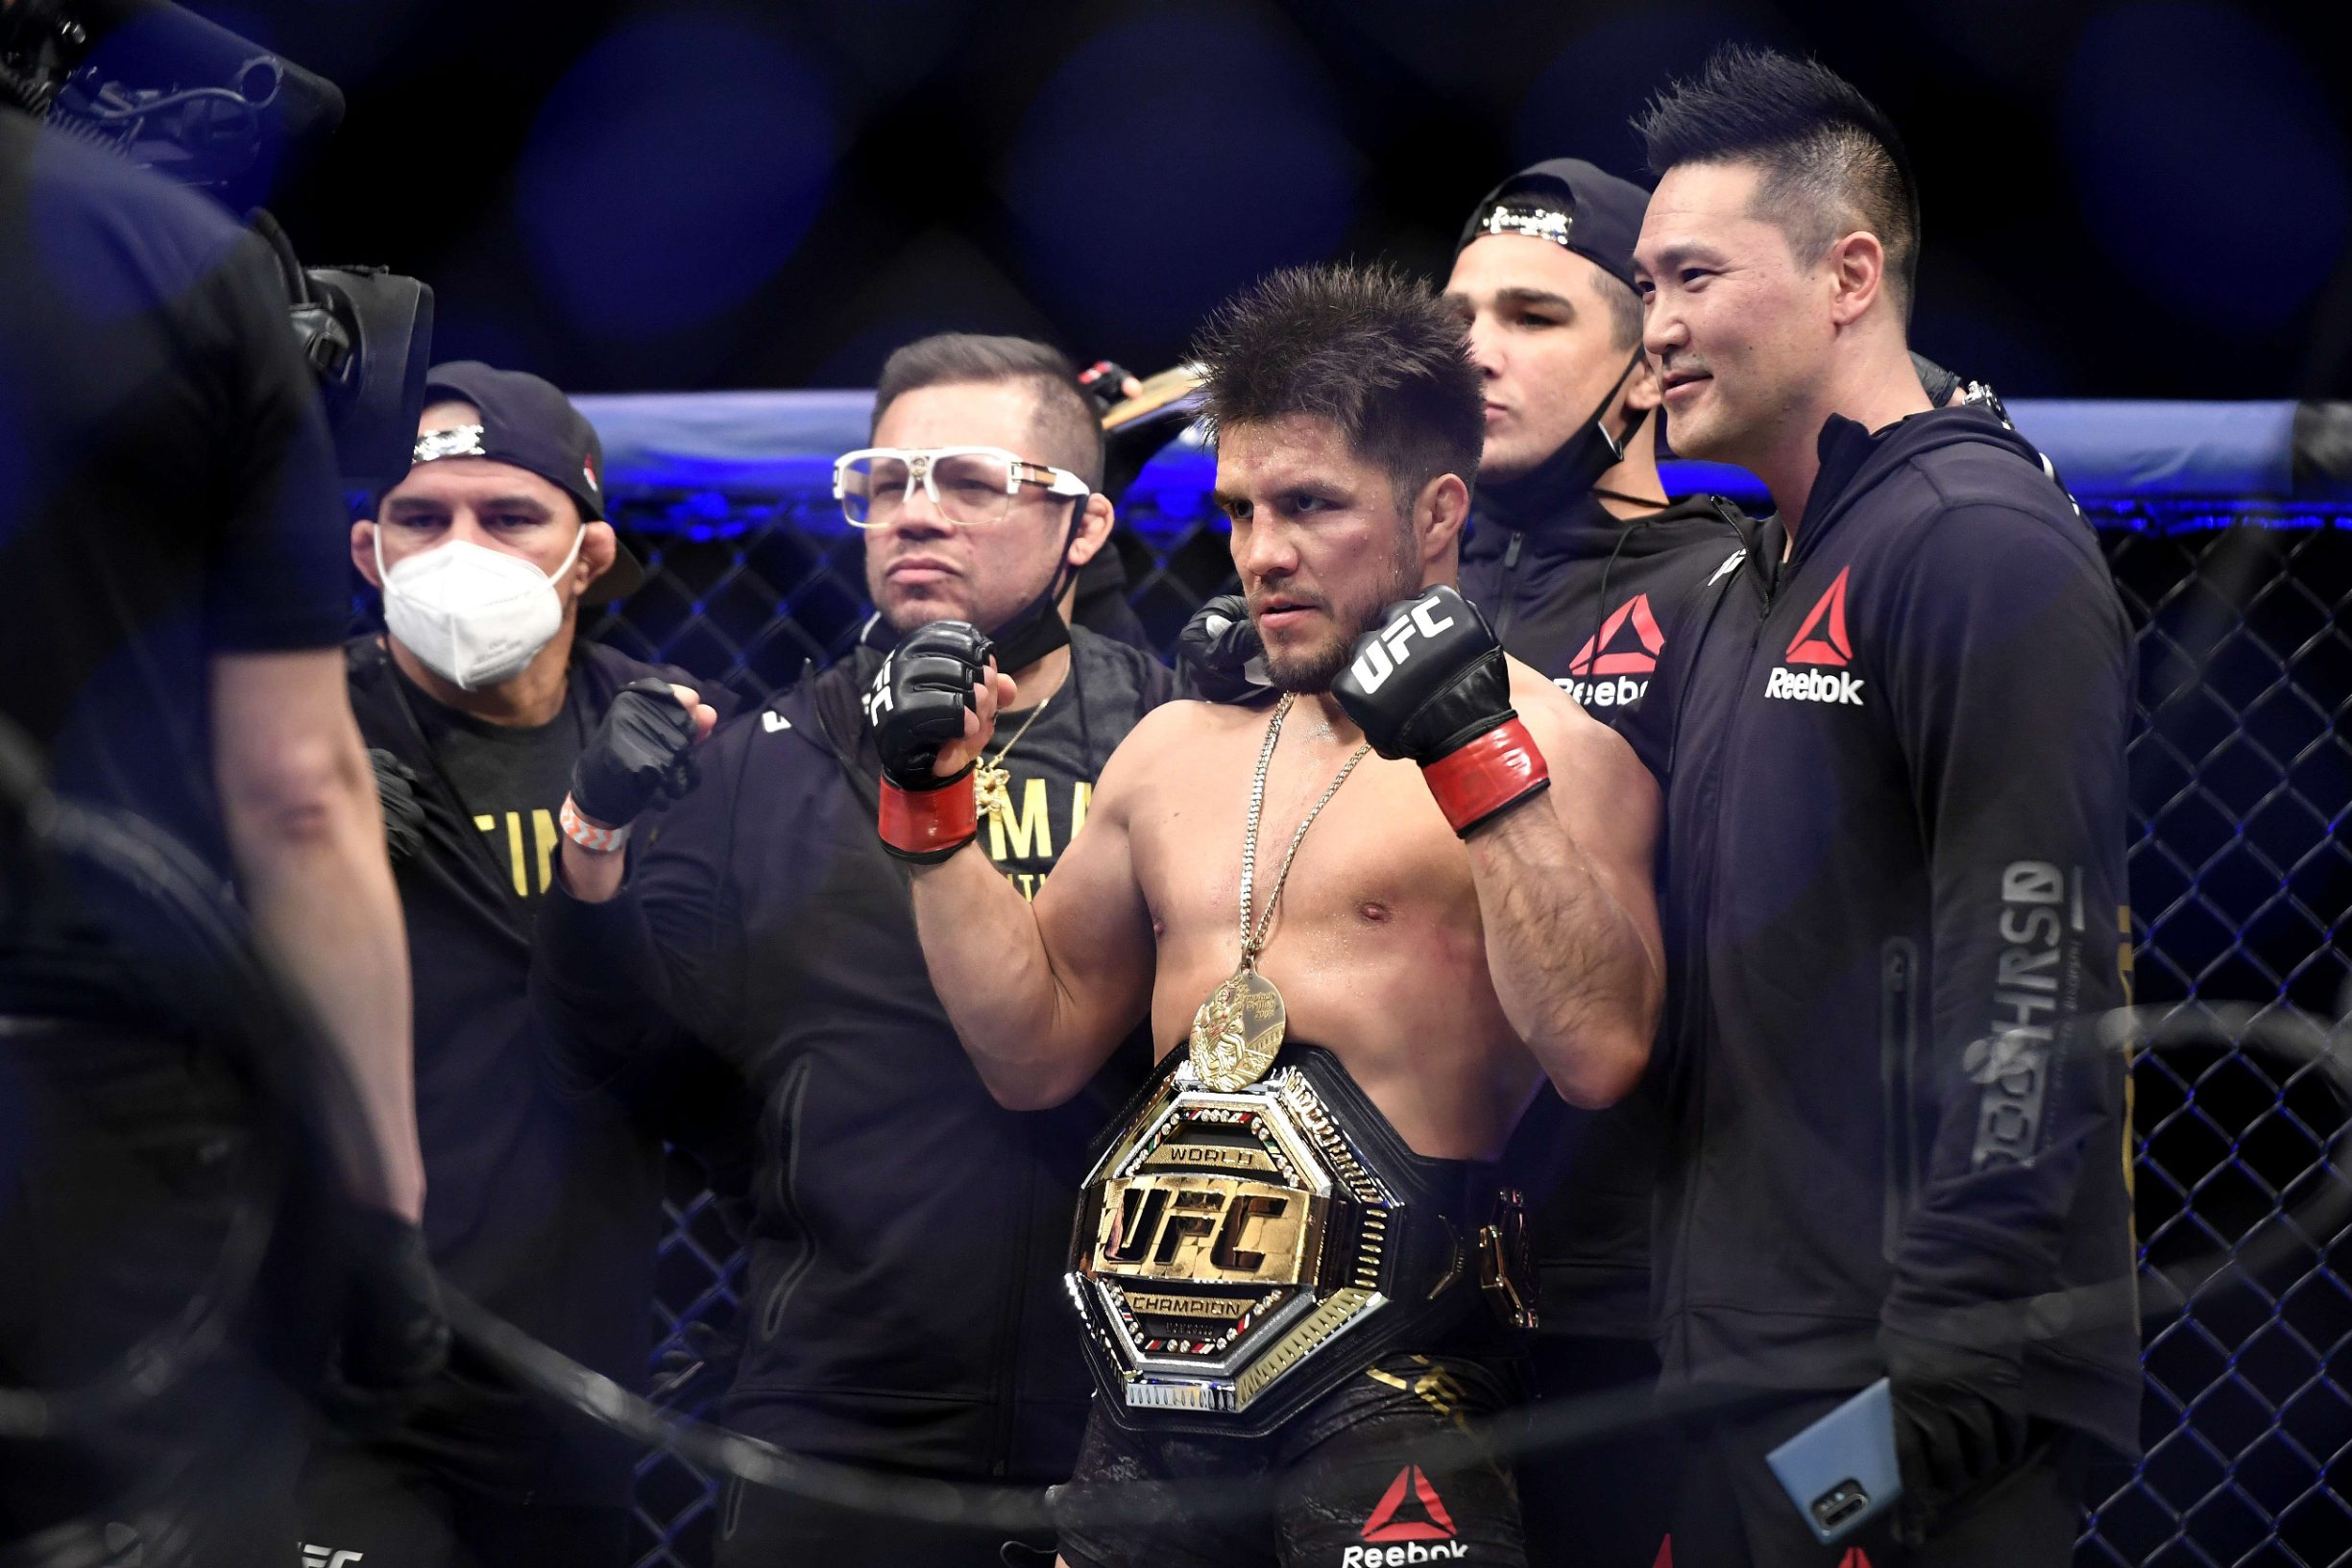 JACKSONVILLE, FLORIDA - MAY 09: Henry Cejudo (L) of the United States celebrates defeating Dominick Cruz (not pictured) of the United States in their bantamweight title fight during UFC 249 at VyStar Veterans Memorial Arena on May 09, 2020 in Jacksonville, Florida.   Douglas P. DeFelice/Getty Images/AFP == FOR NEWSPAPERS, INTERNET, TELCOS & TELEVISION USE ONLY ==